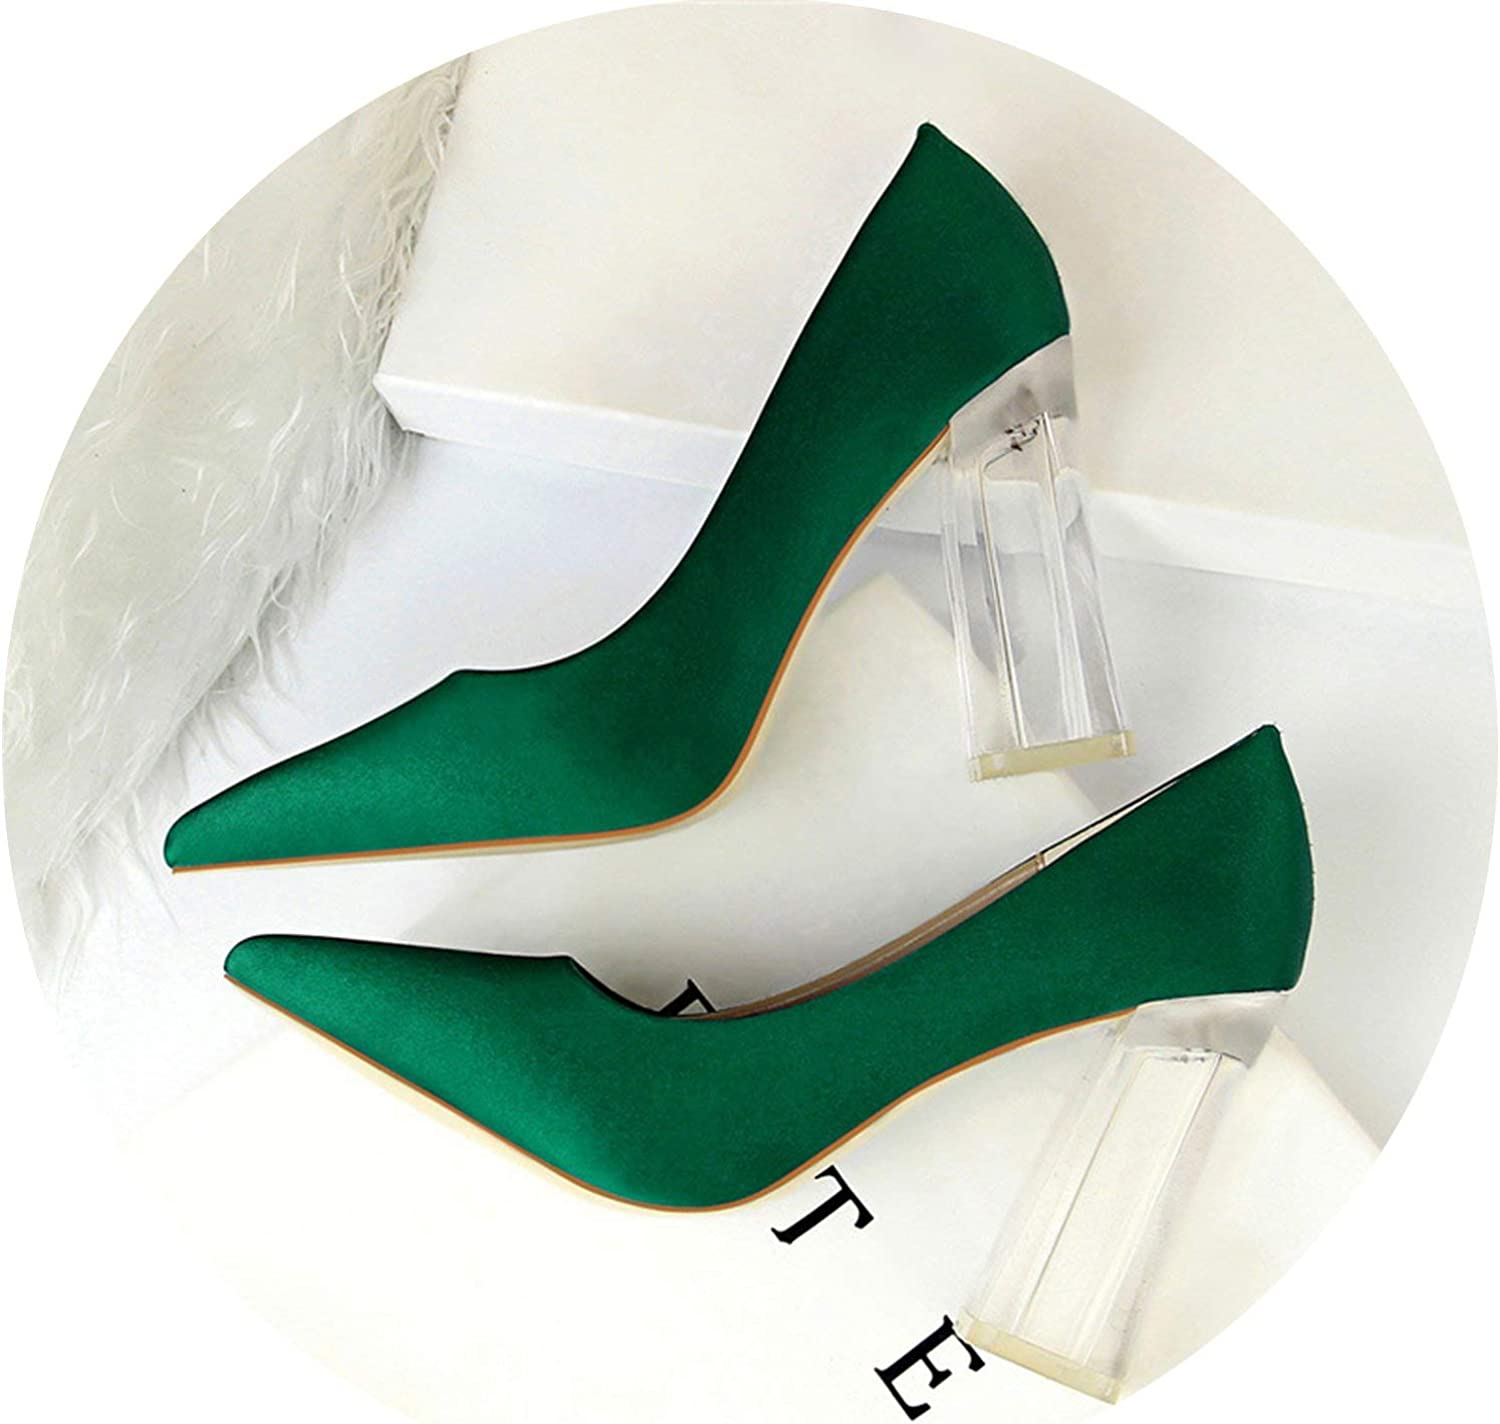 HANBINGPO New Pointed Toe Transparent Block High Heels Stain Yellow Pumps Escarpins Women Fall Spring Elegant Lady Office Party shoes,Green,7.5